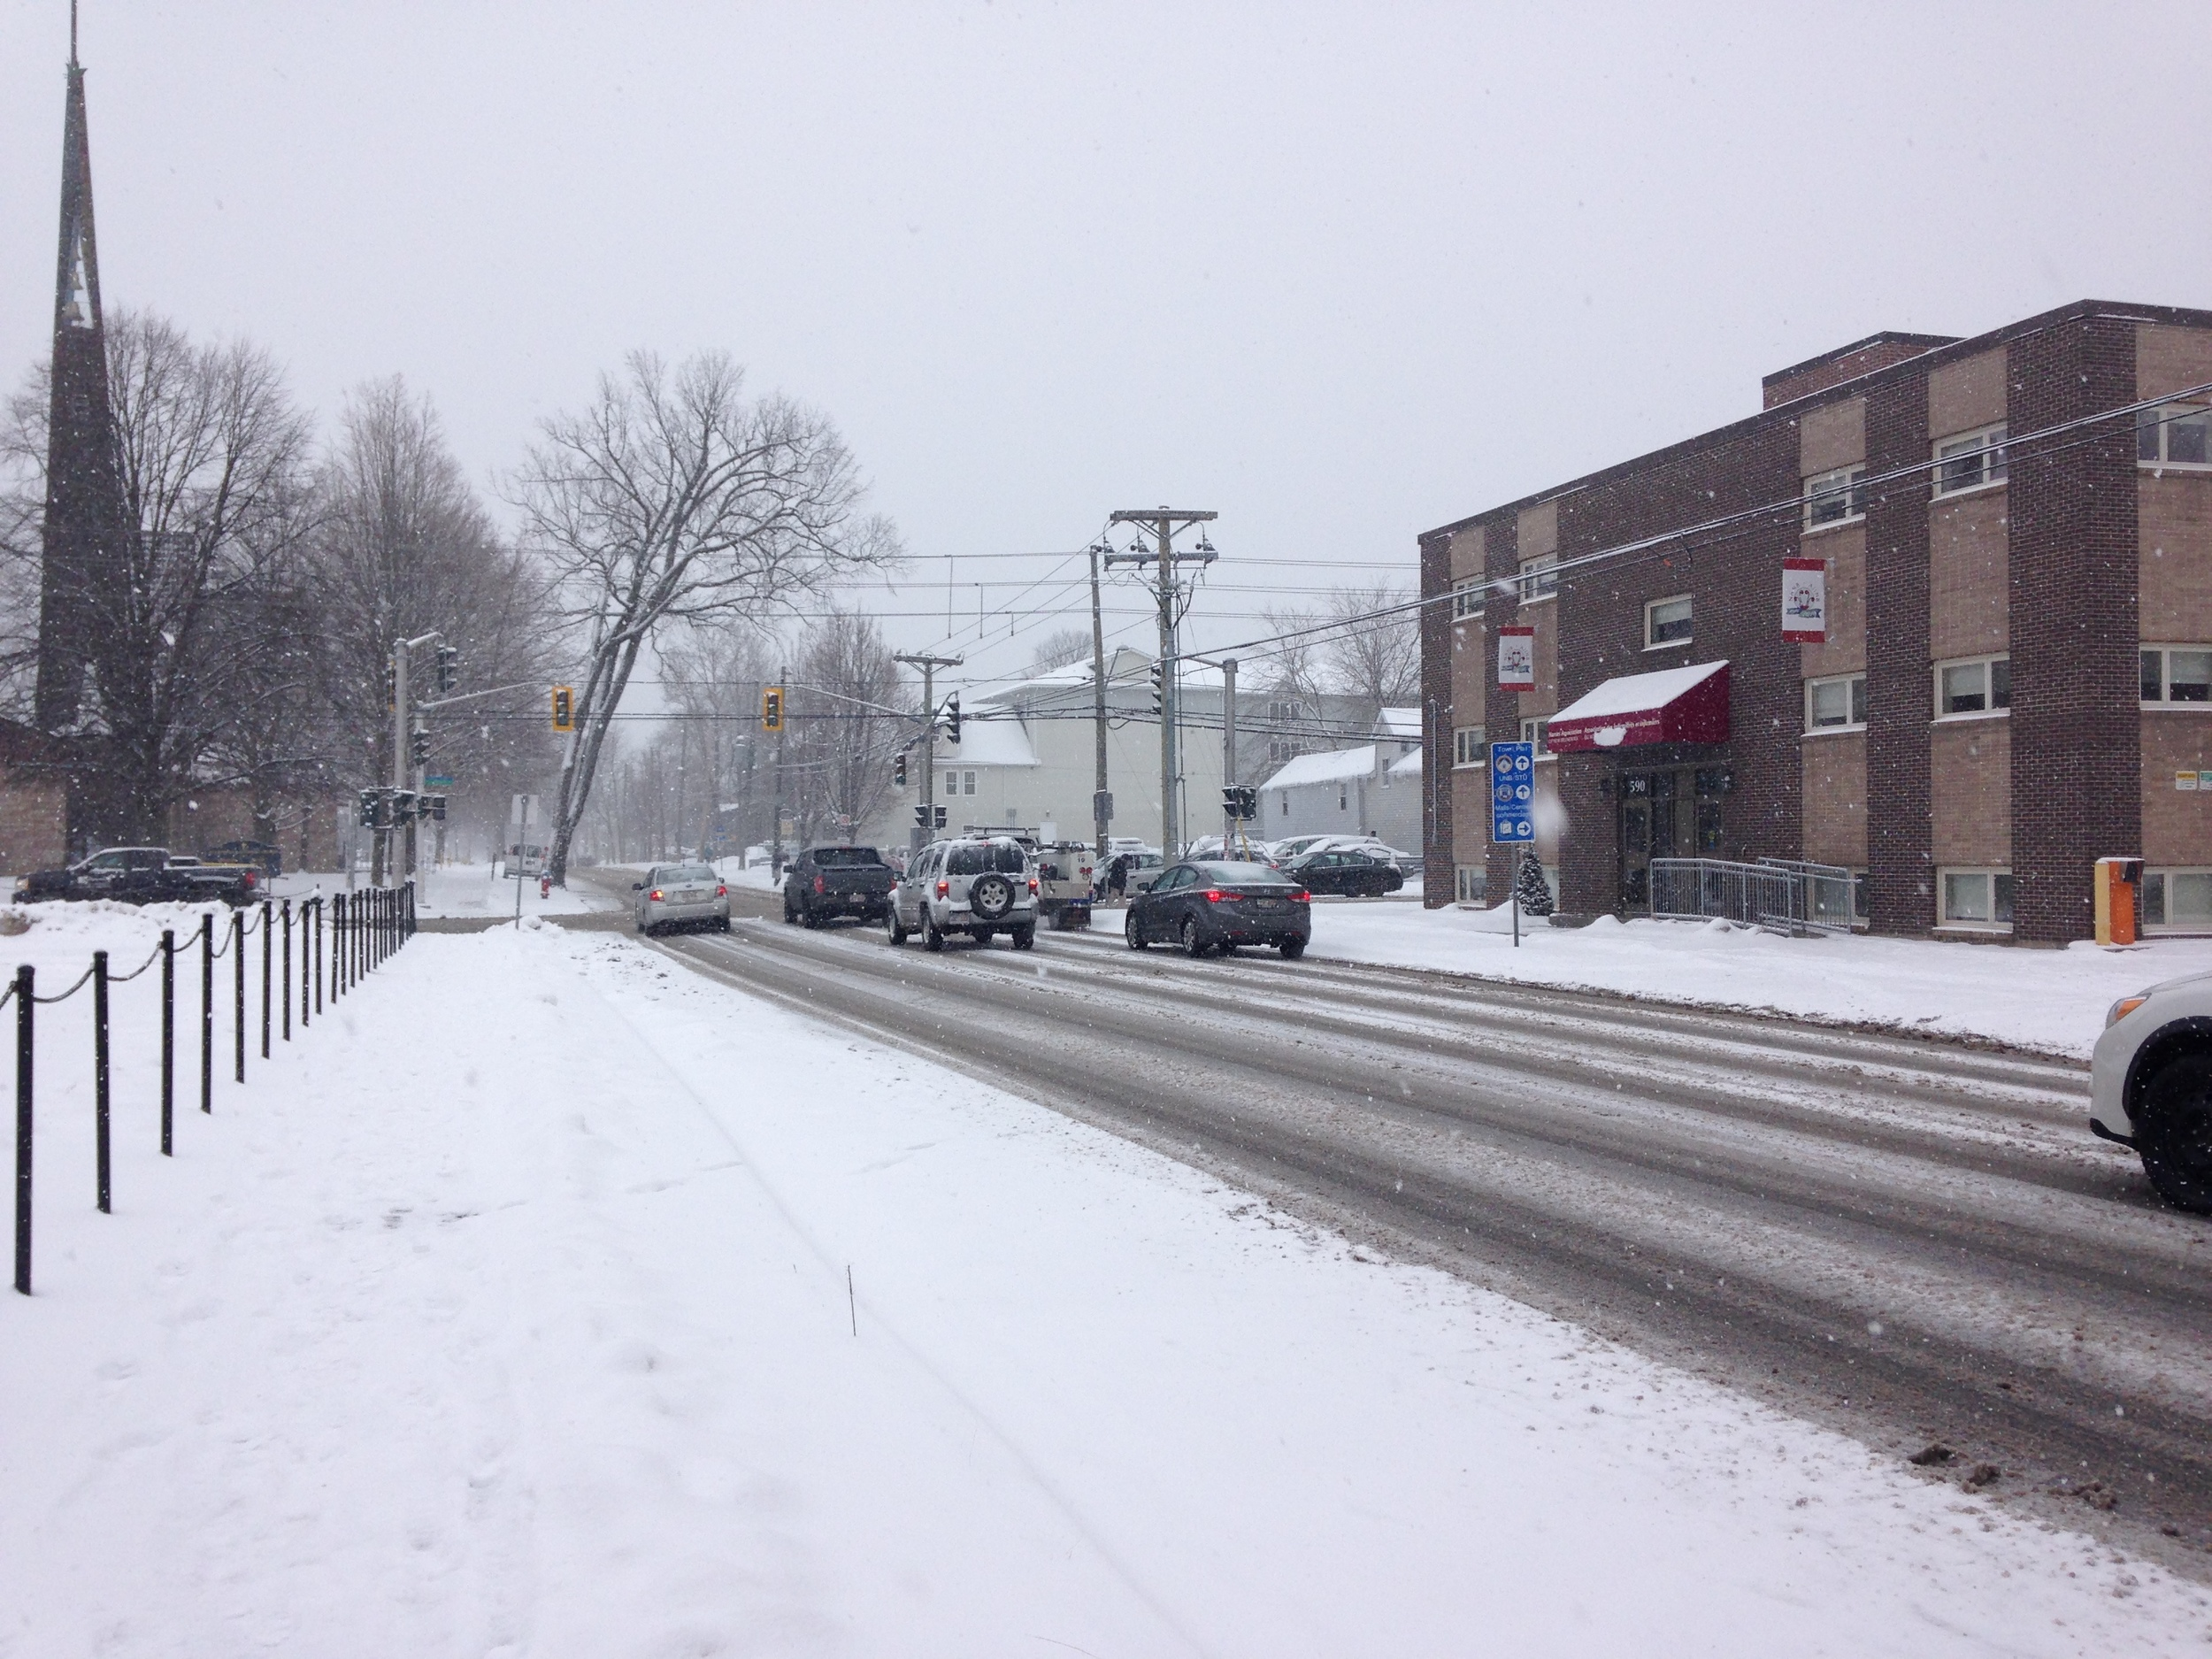 A three-lane segment of Brunswick Street right before the market. I took this picture during a snow storm power outage, which meant that this intersection became accidental shared space with no traffic-lights. Everyone slowed down, yielded to pedestrians, and no one was hurt.